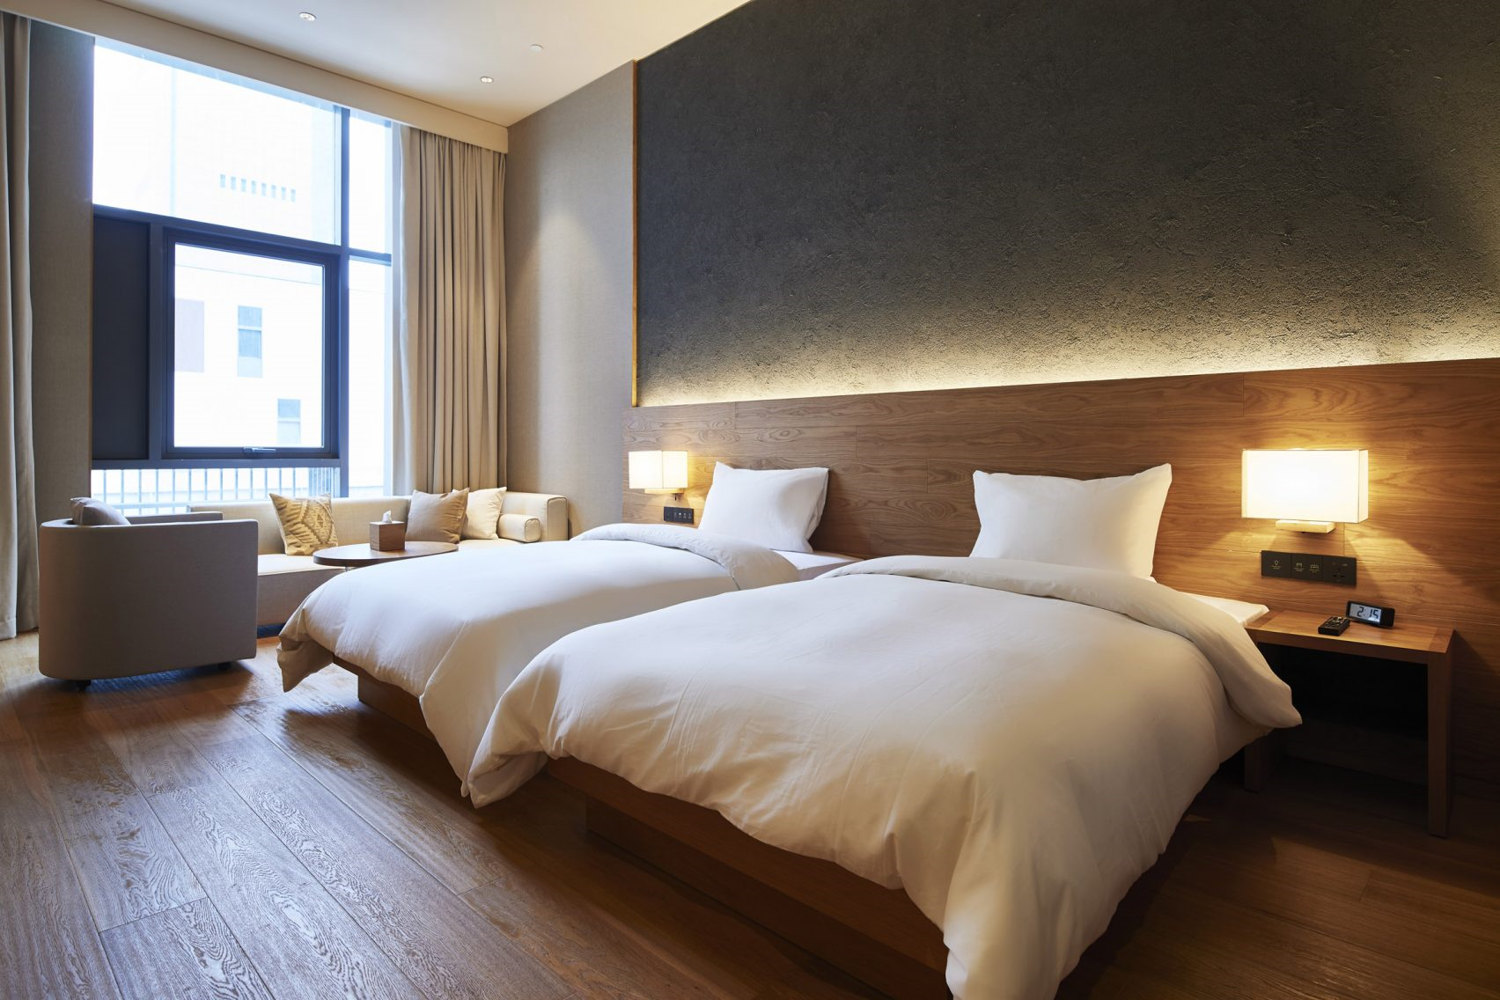 Hotel room design trends what travellers want in their for Hotel room decor